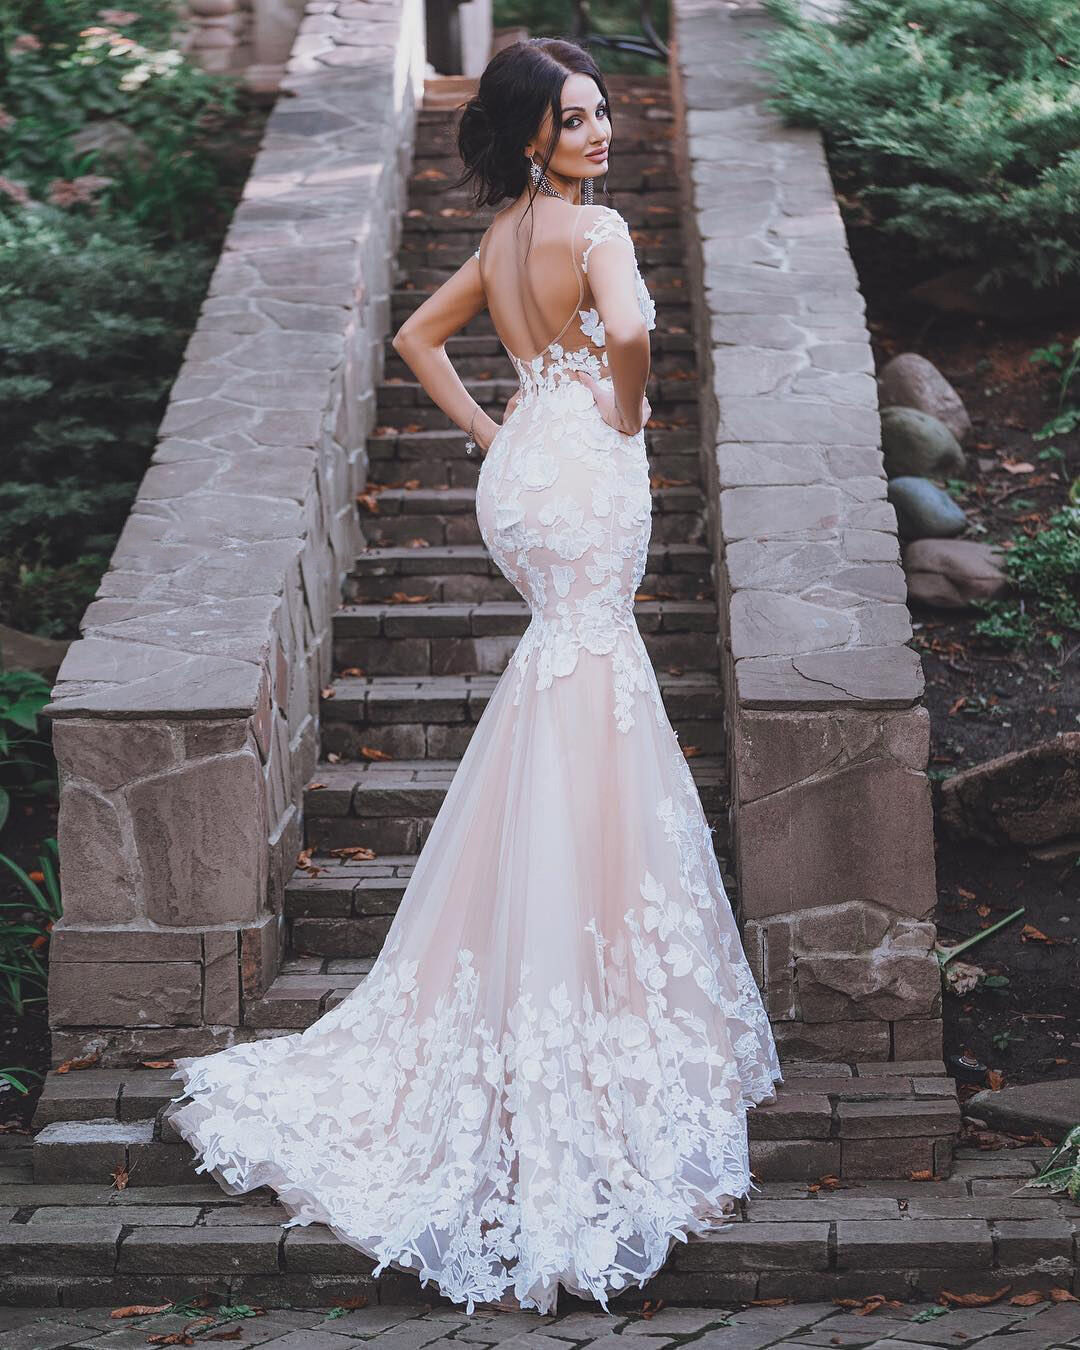 Blush Pink Bridal Gowns Wedding Dresses Mermaid Backless Plus Pees Size S Ebay